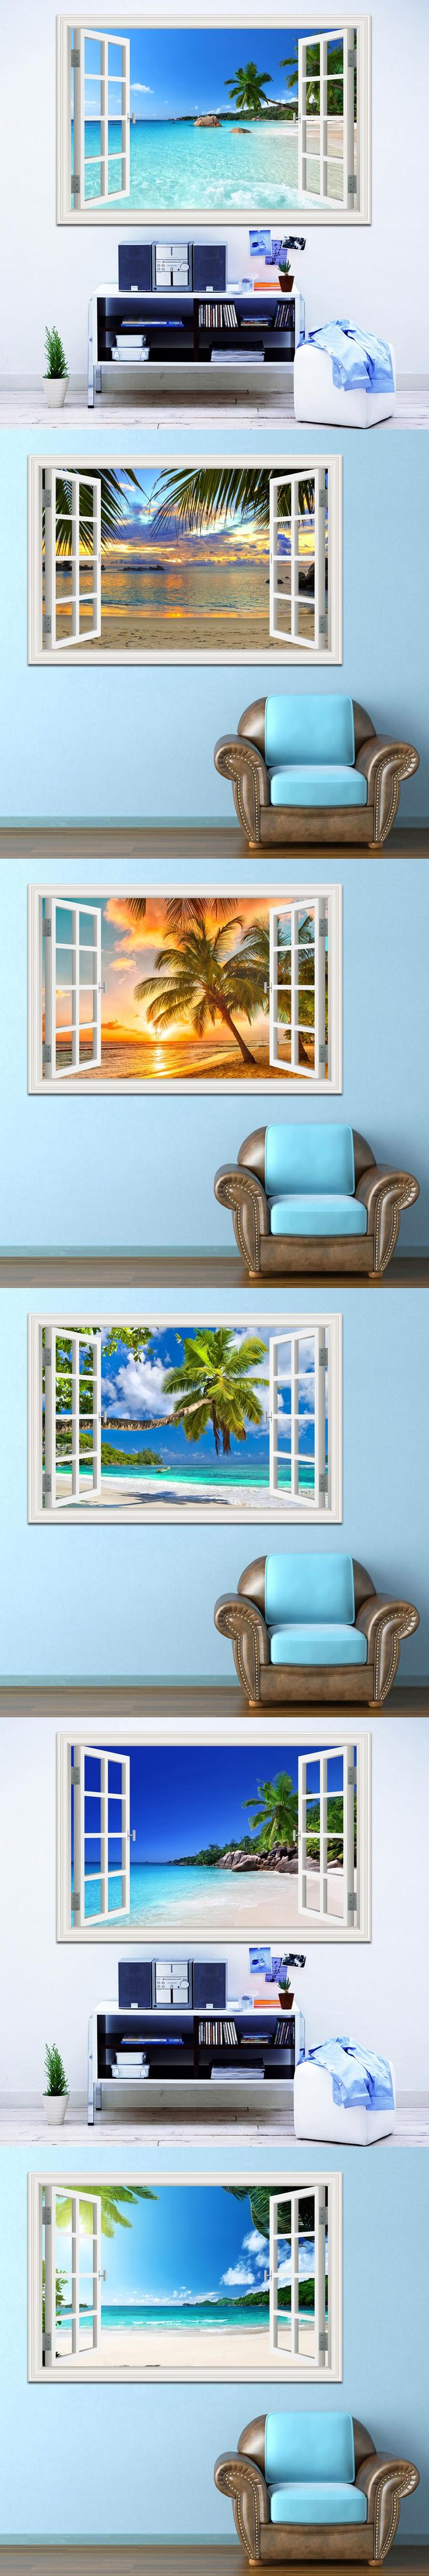 Best 25+ Seaside wallpaper ideas on Pinterest | Perfect wallpaper ...